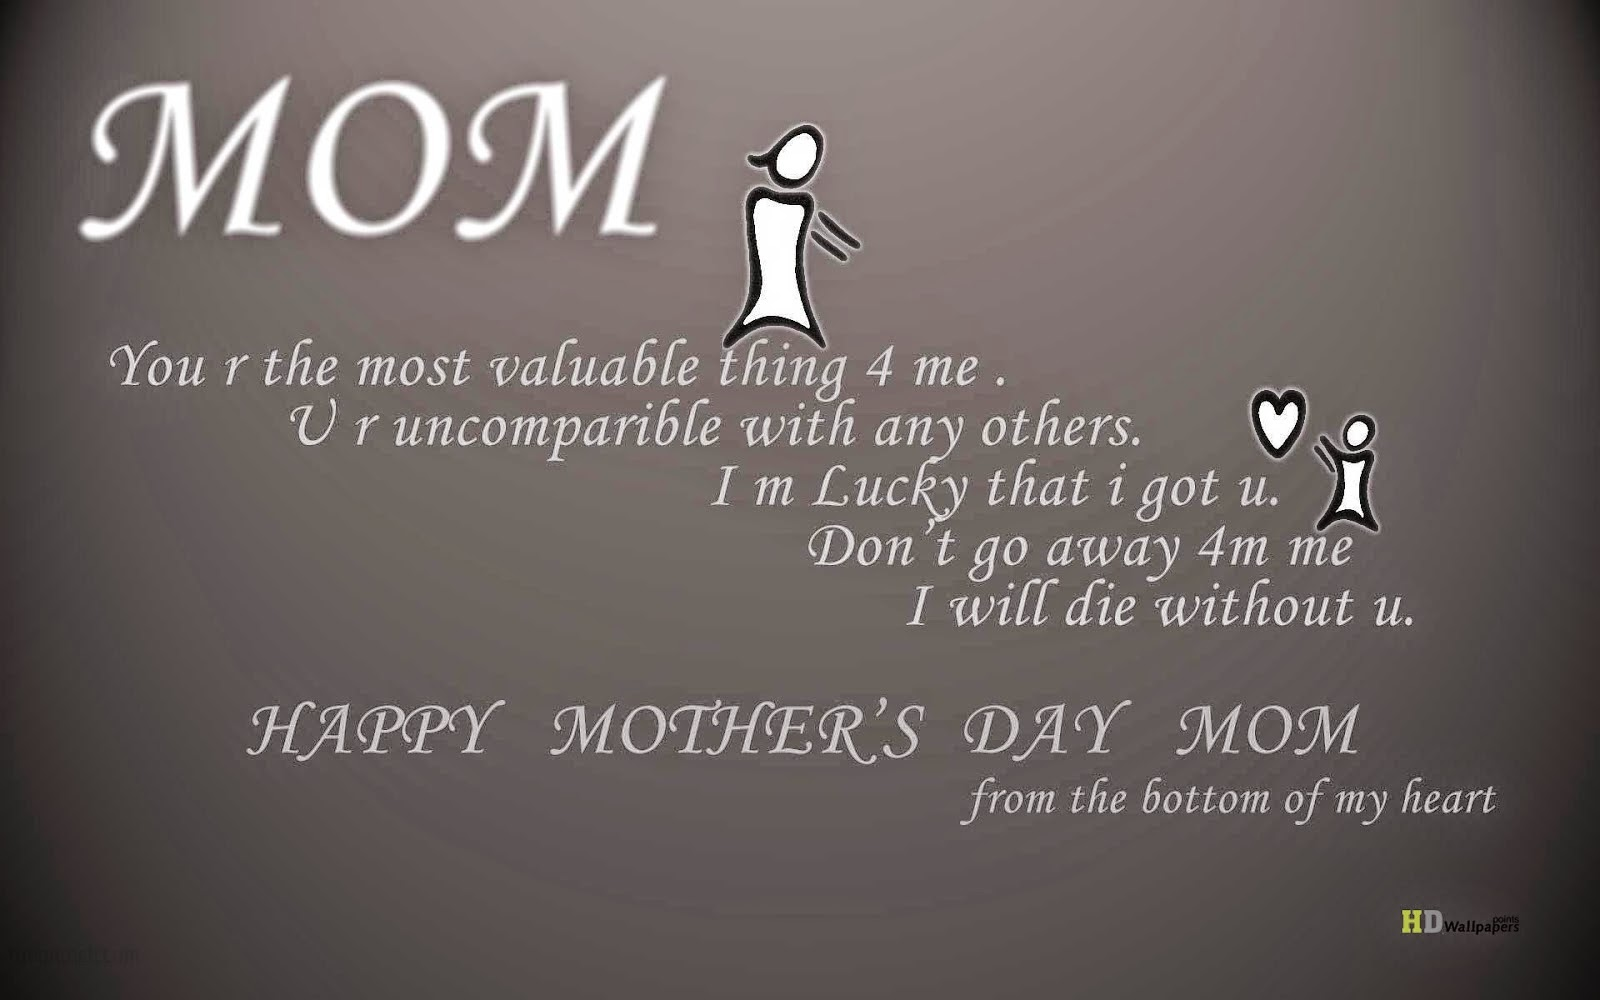 Love your mother the most beautiful person on this earth Our best critic yet our strongest supporter